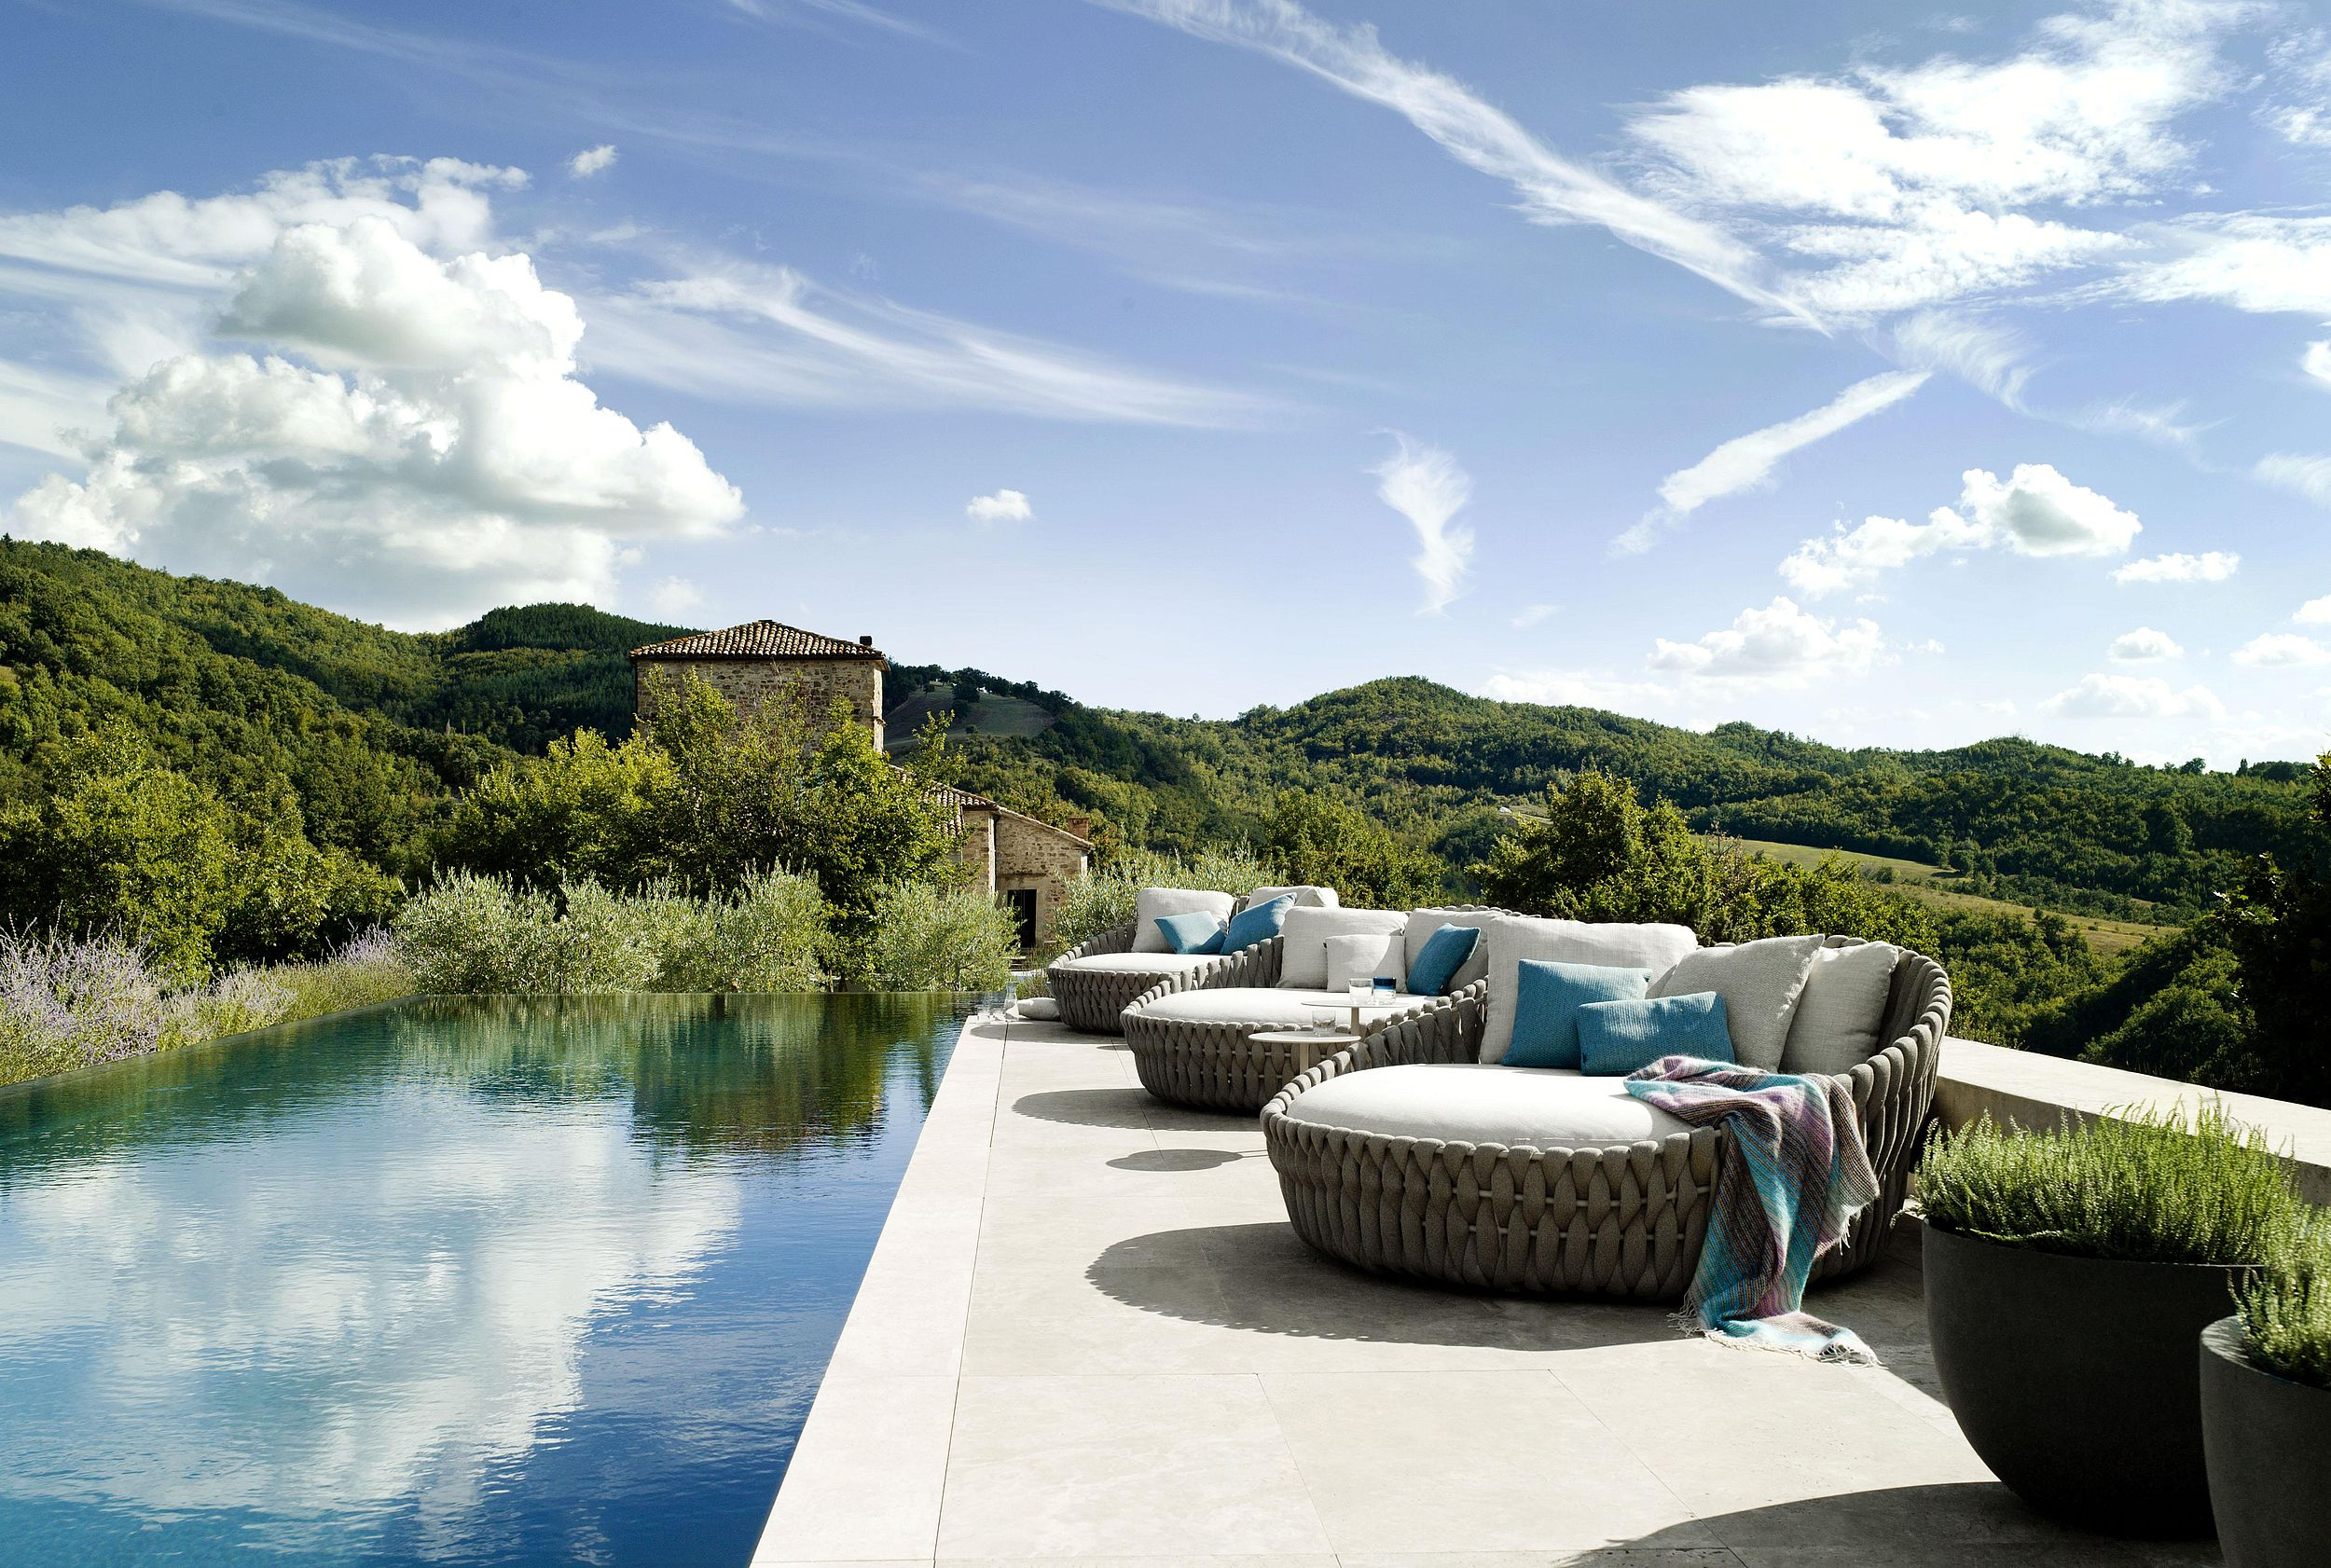 Tosca daybeds by Monica Armani for Tribù